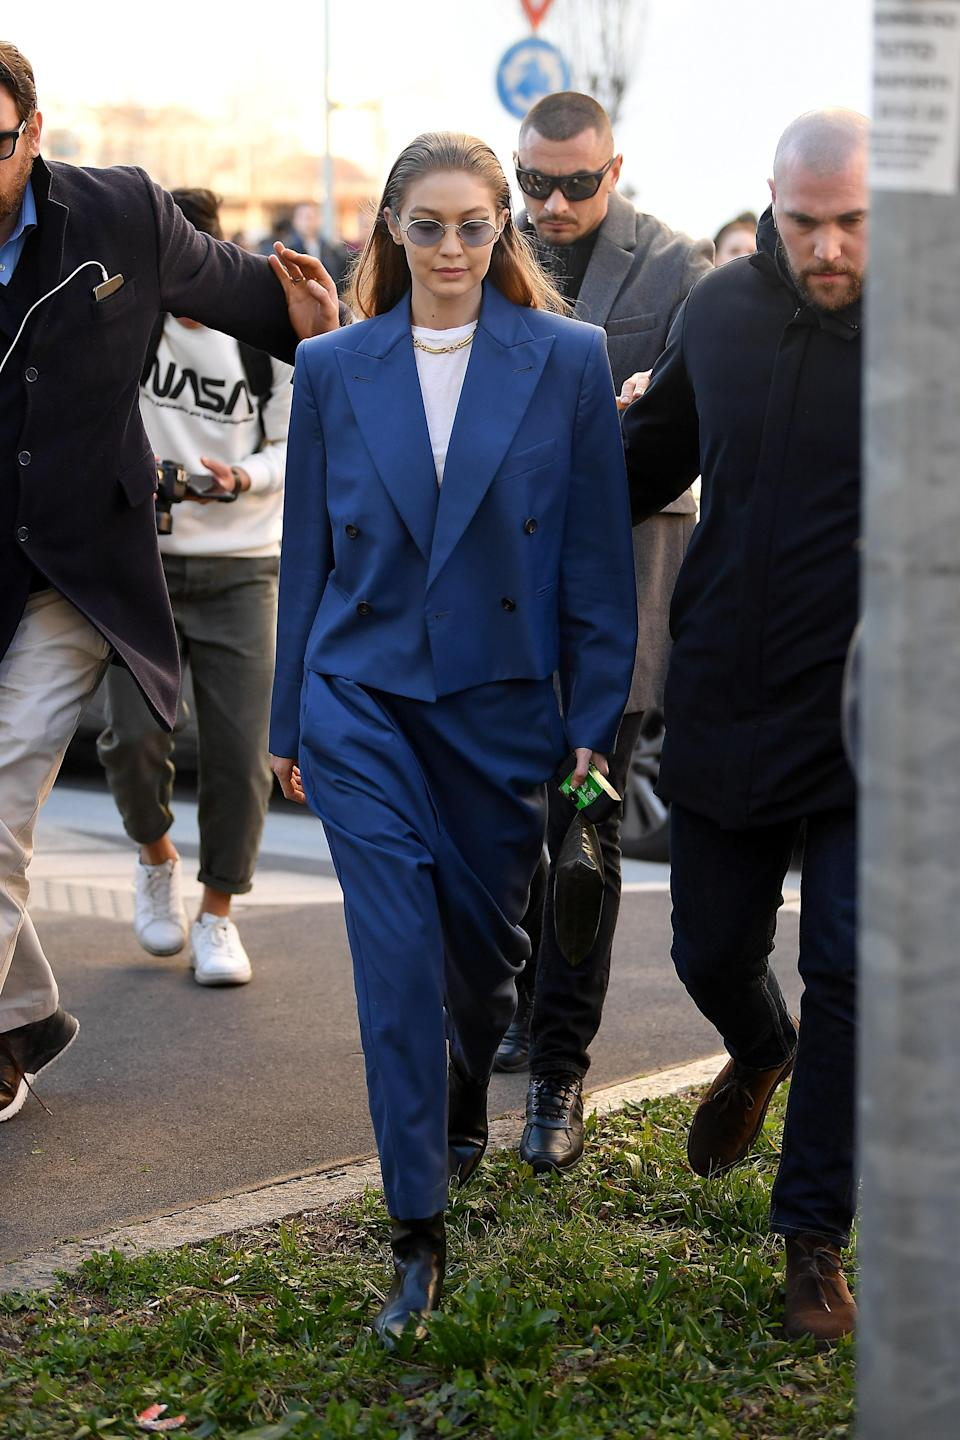 What can we say? Gigi loves her oversized suits.